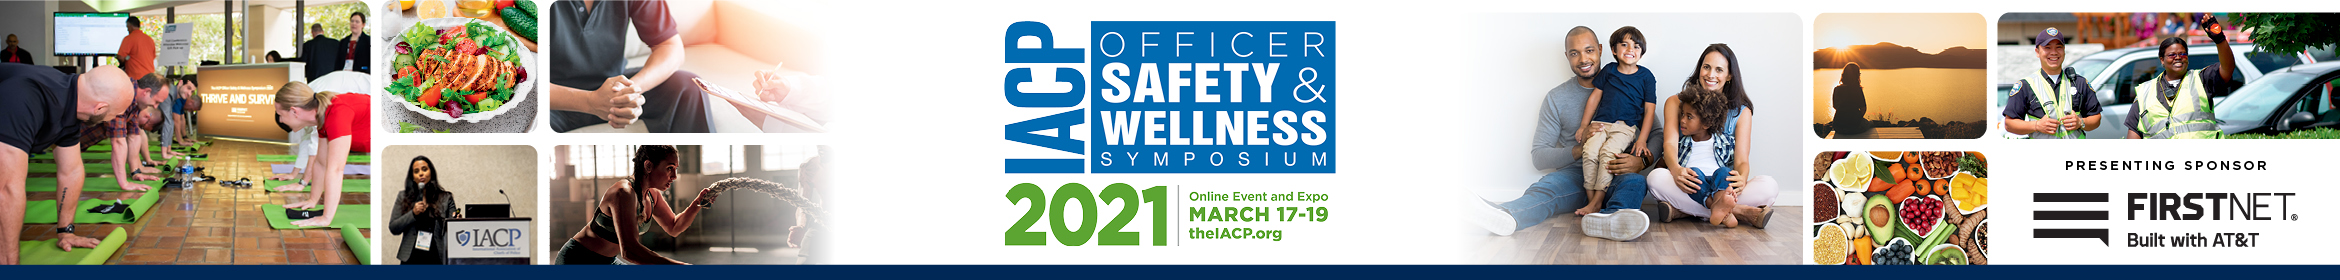 Officer Safety and Wellness Symposium 2021 Main banner